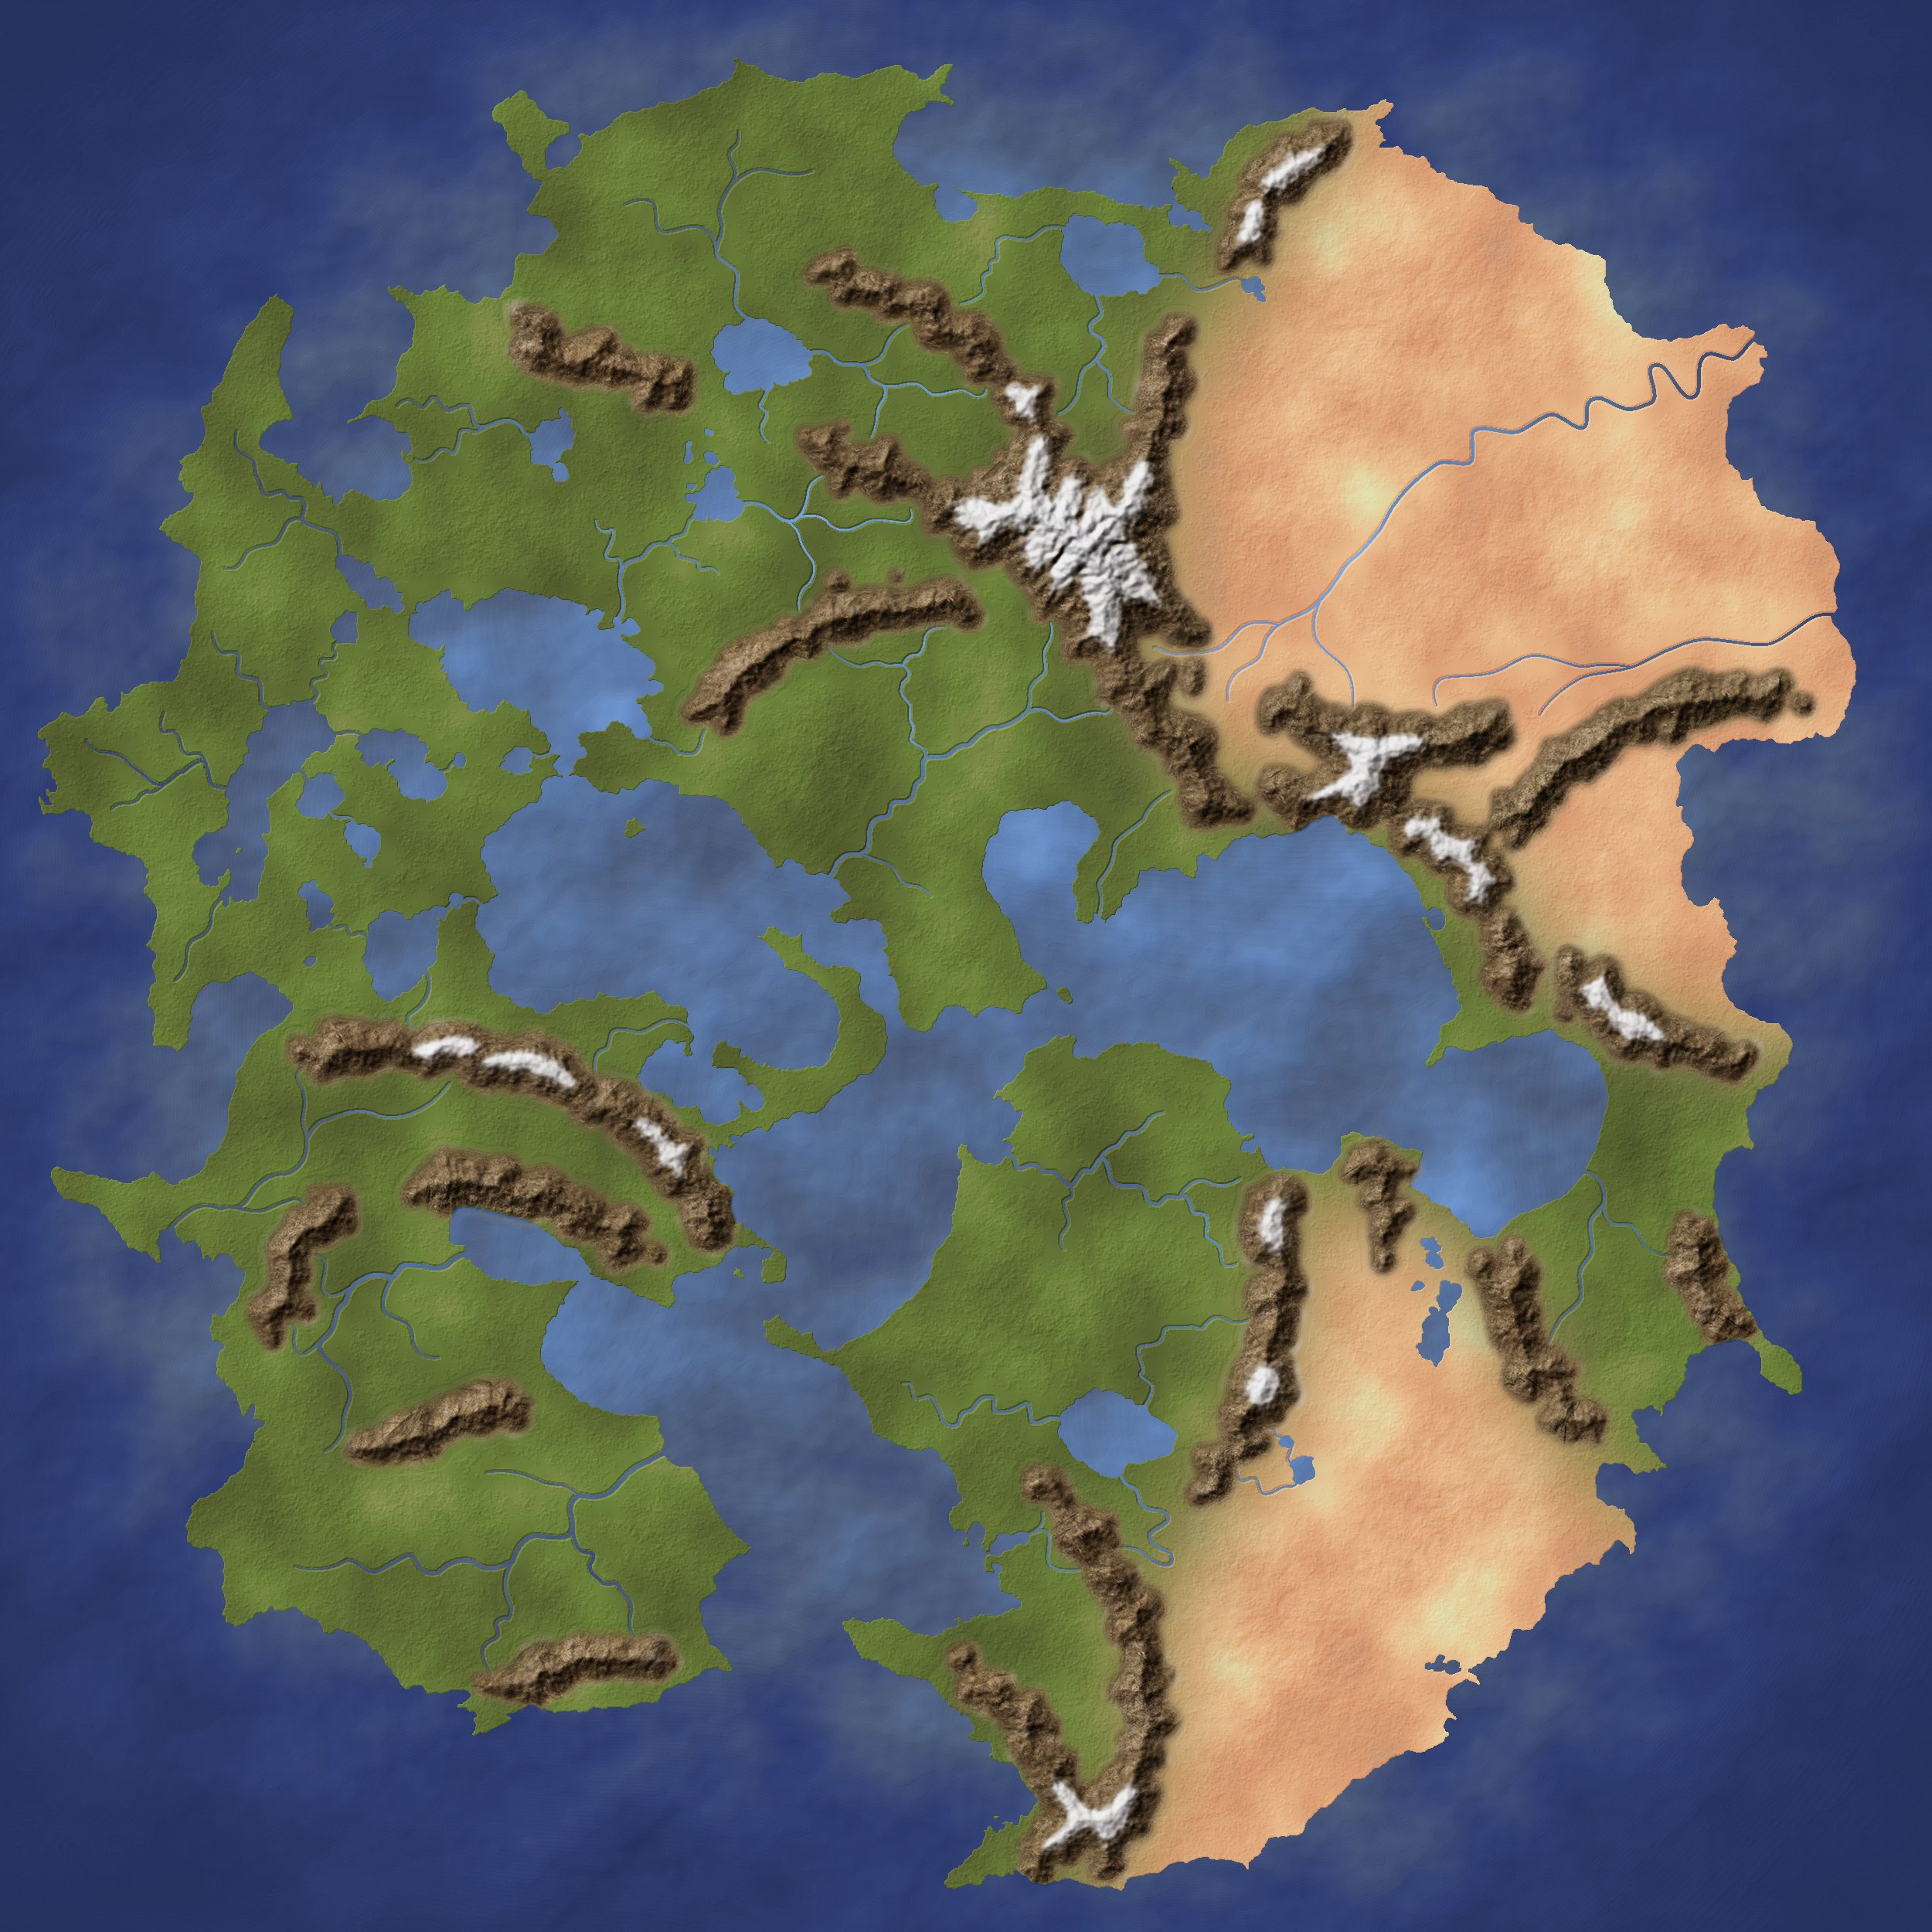 Unnamed Continent